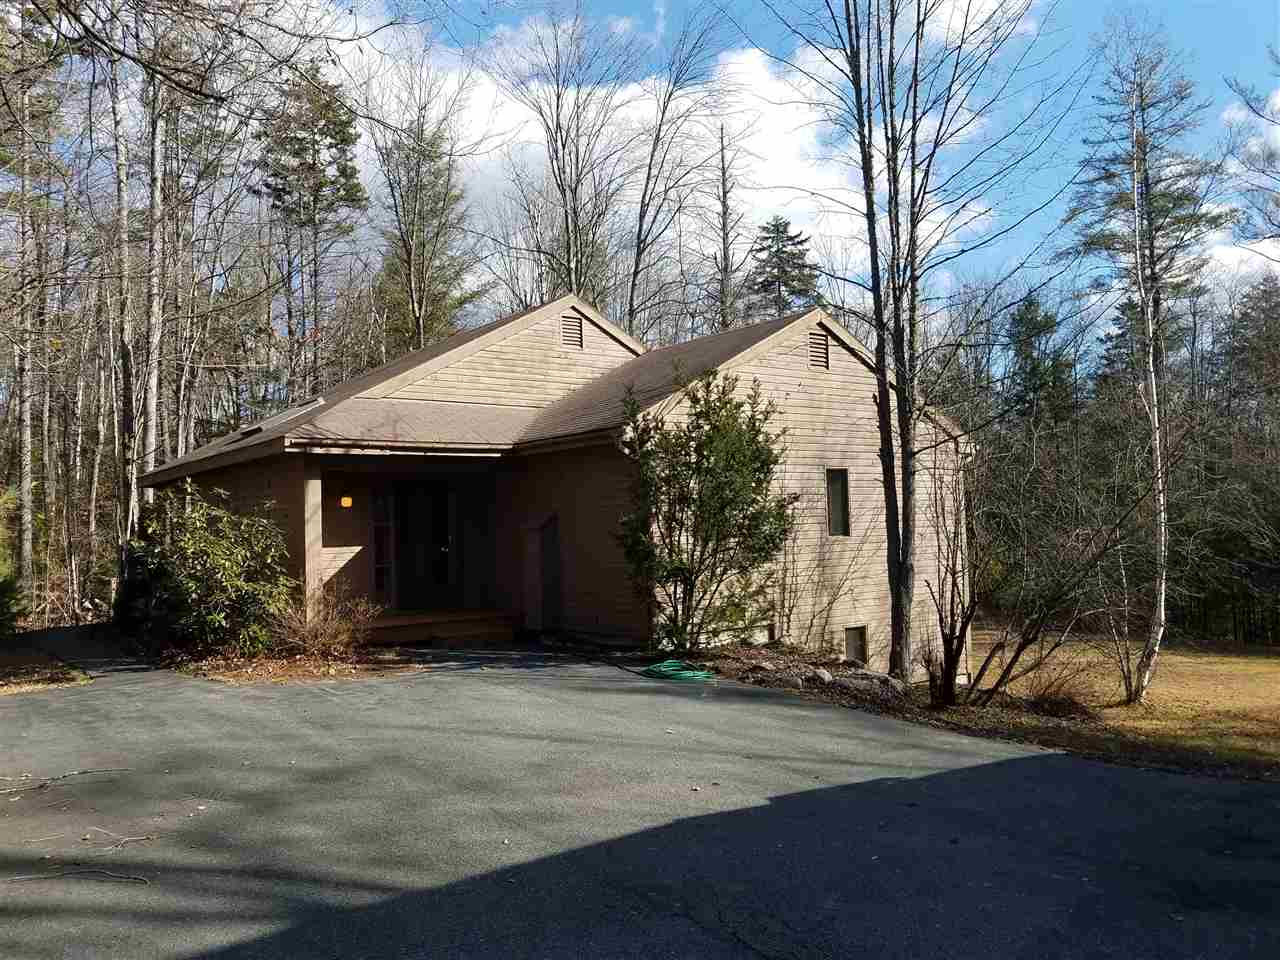 MLS 4786766: 50 Greensward Drive, Grantham NH